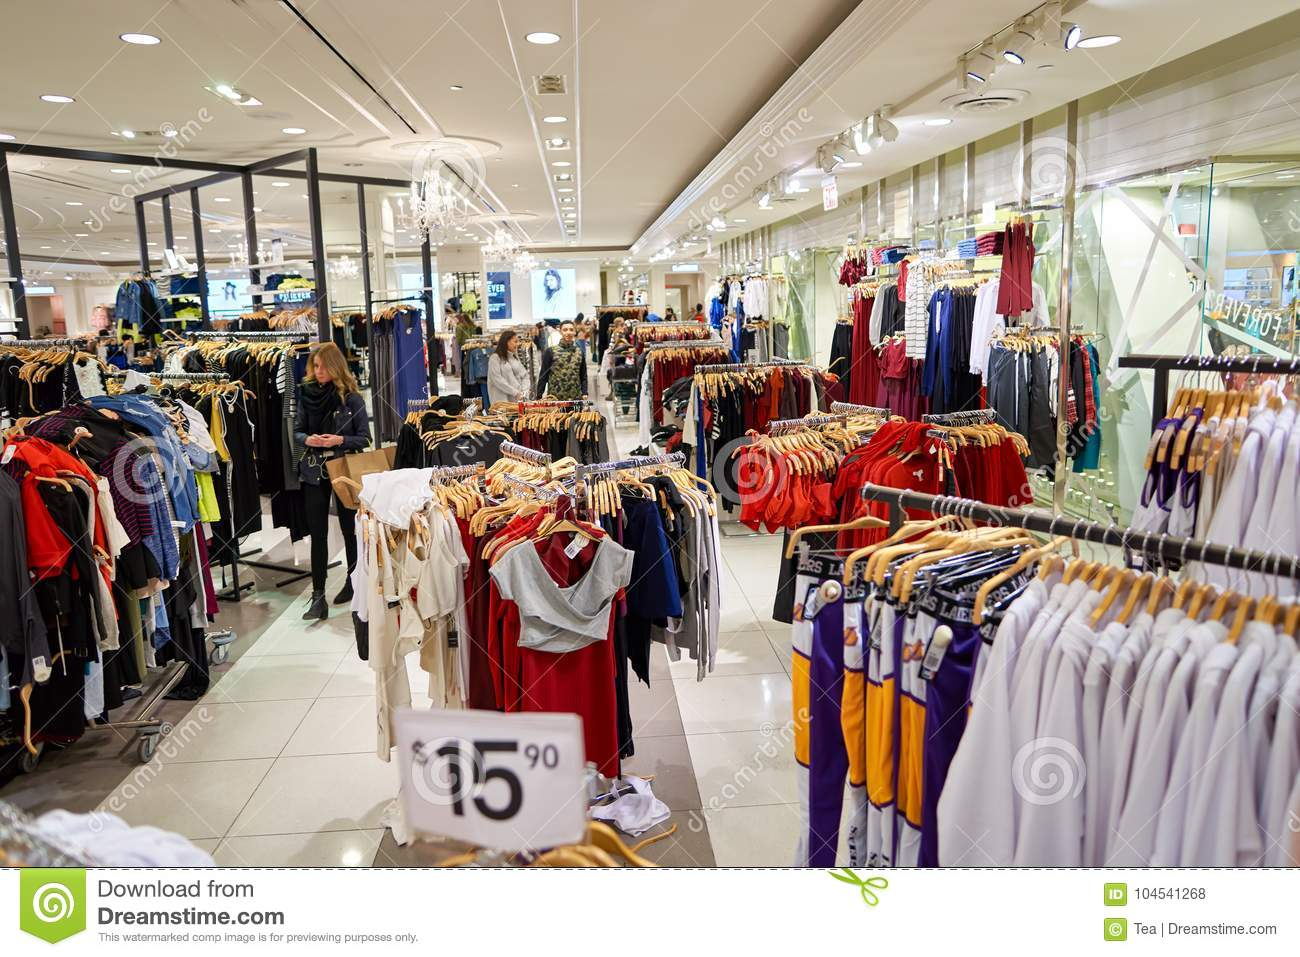 forever 21 store editorial stock photo image of mart 104541268